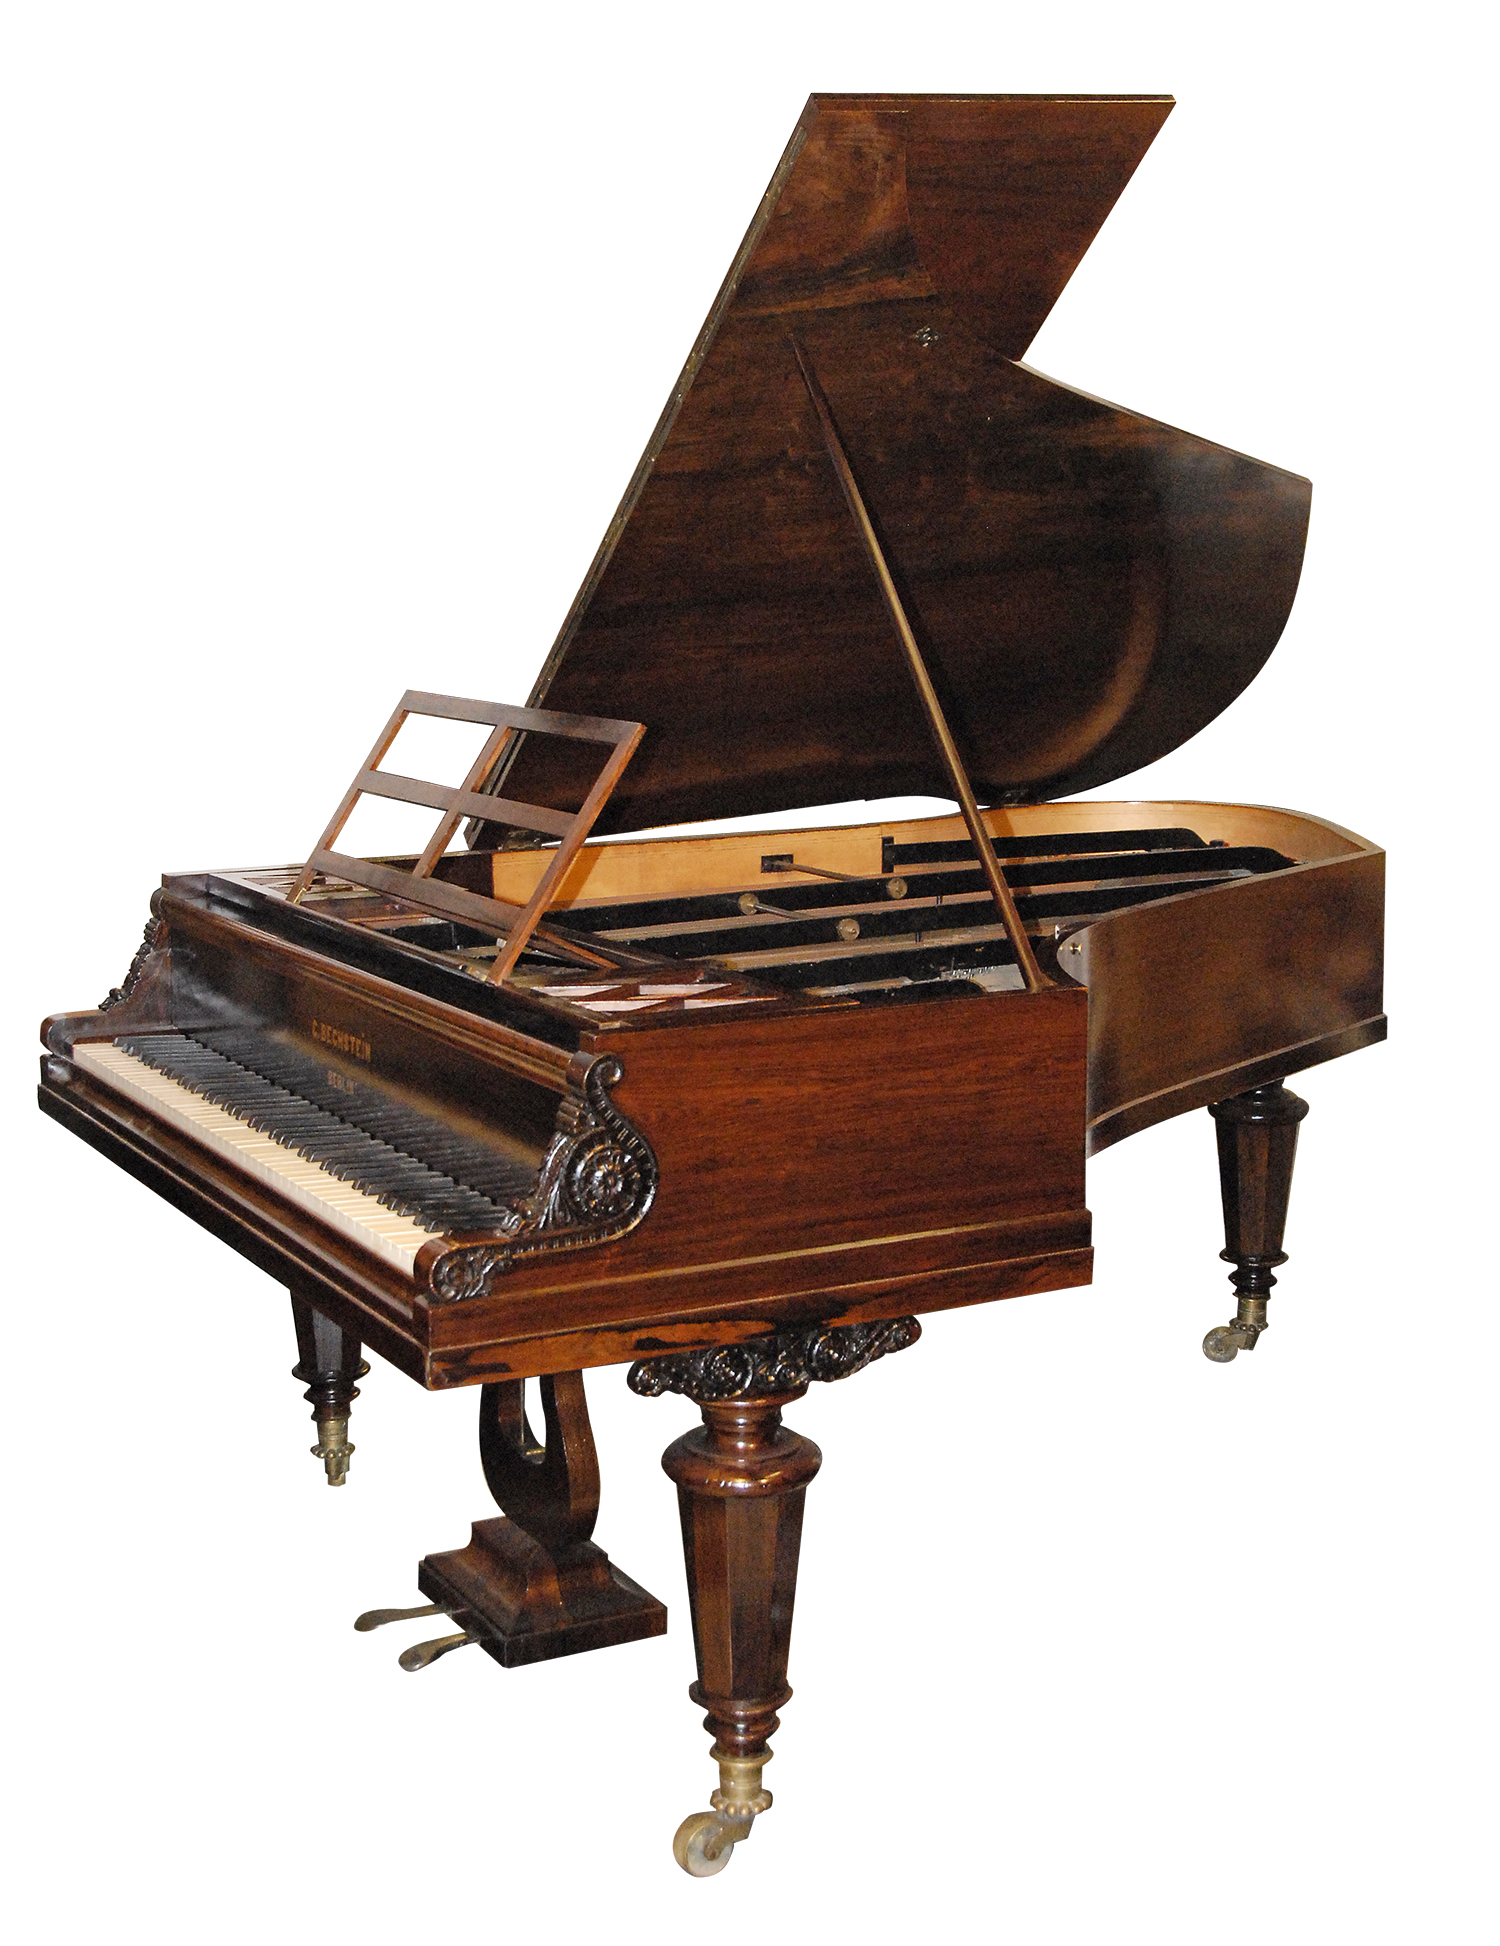 Bechstein grand piano, fortepiano, art case piano, period piano